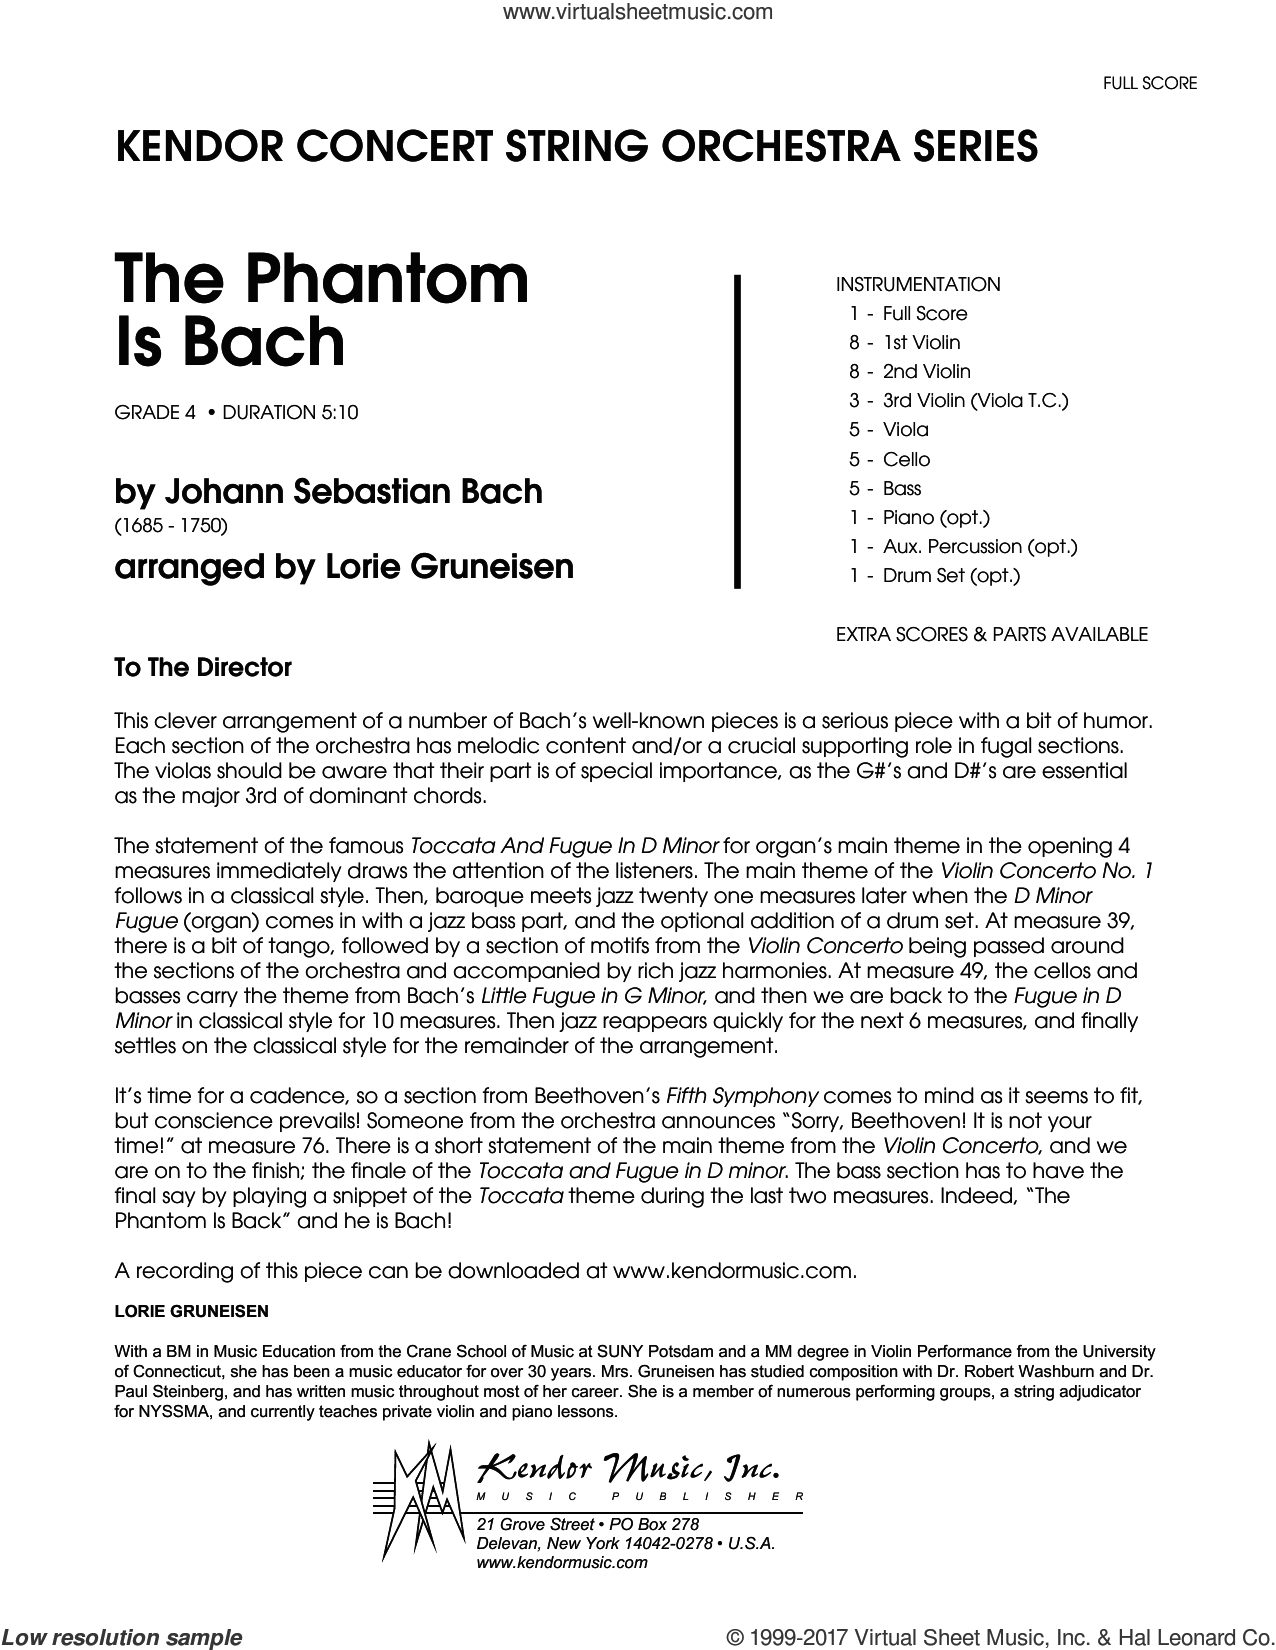 The Phantom Is Bach (COMPLETE) sheet music for orchestra by Lorie Gruneisen and Johann Sebastian Bach, classical score, intermediate